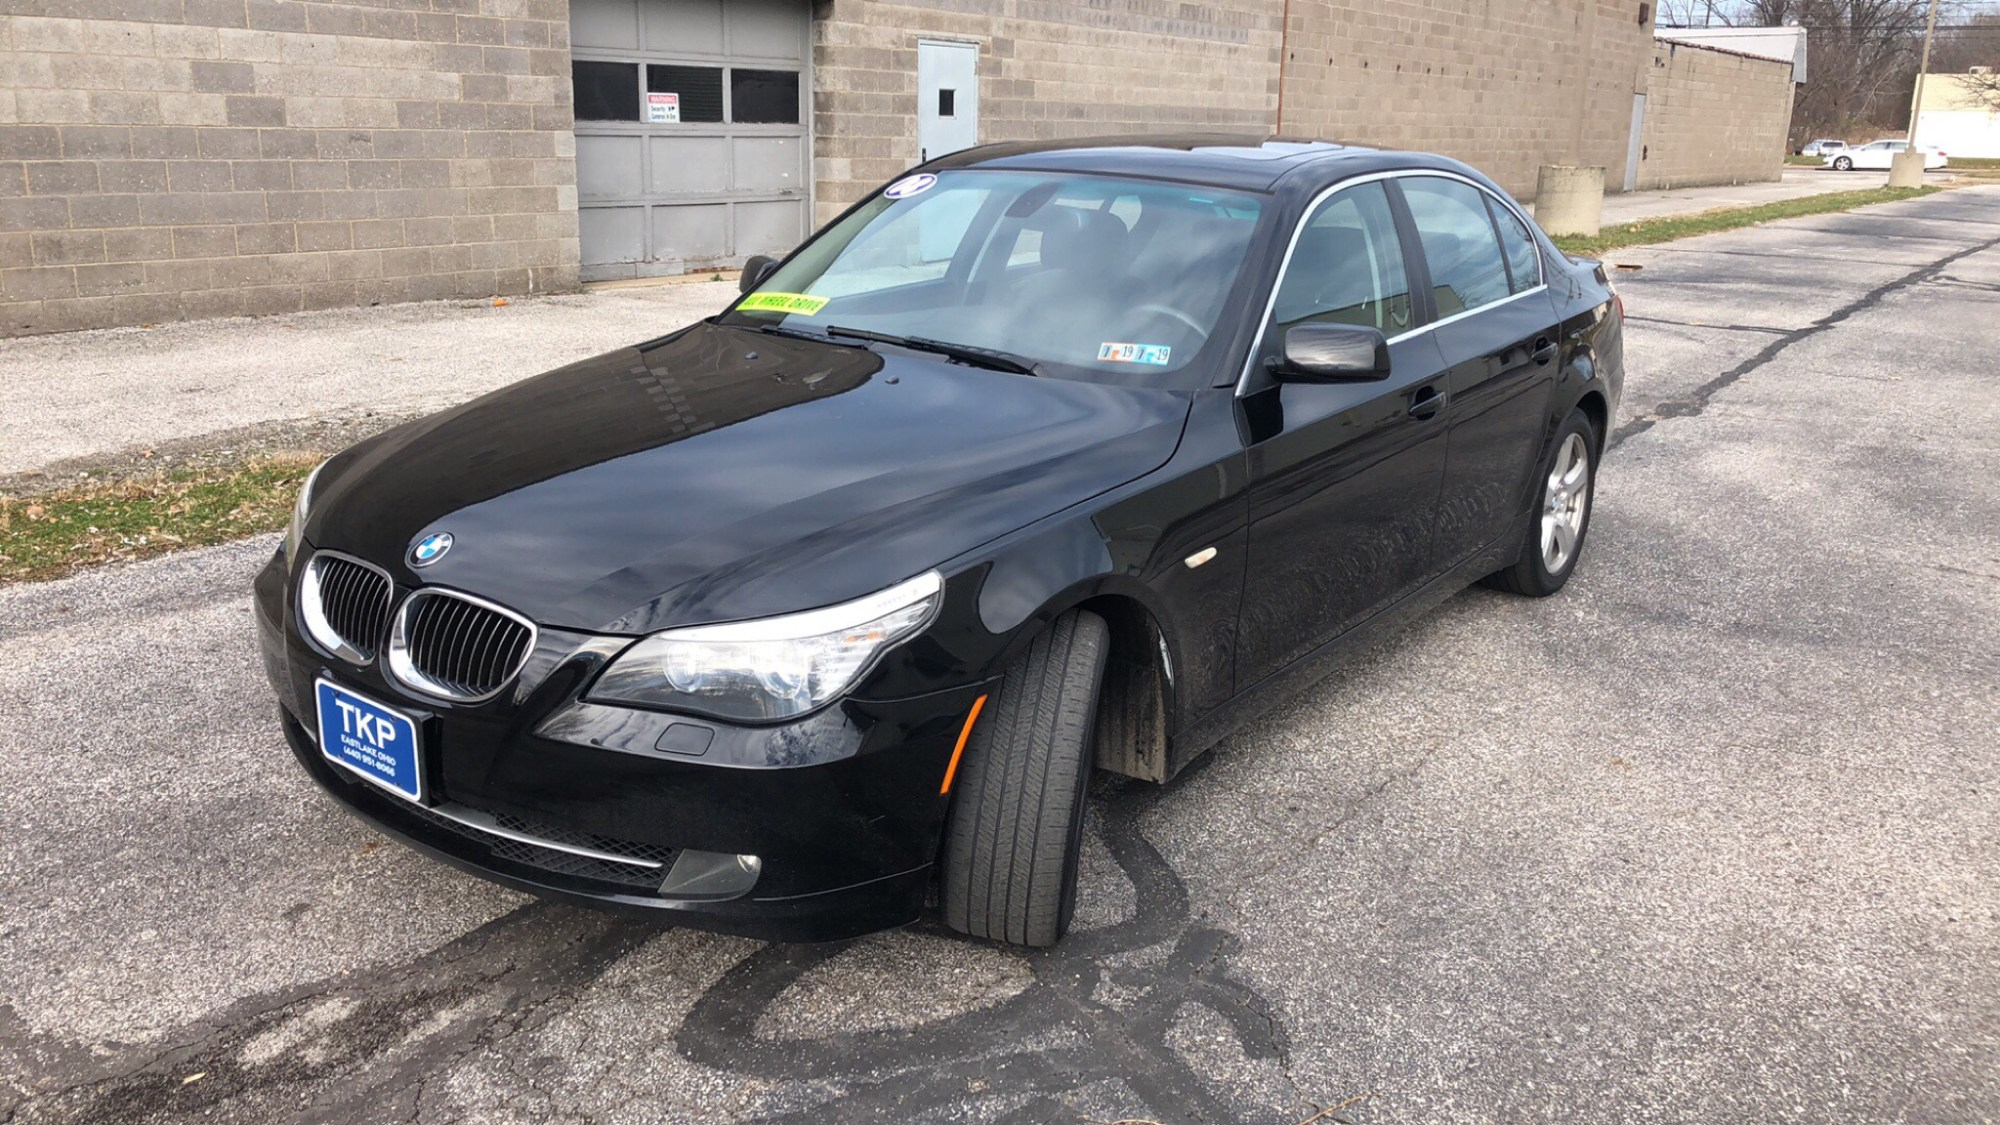 hight resolution of 2008 bmw 535 xi internet price 8 995